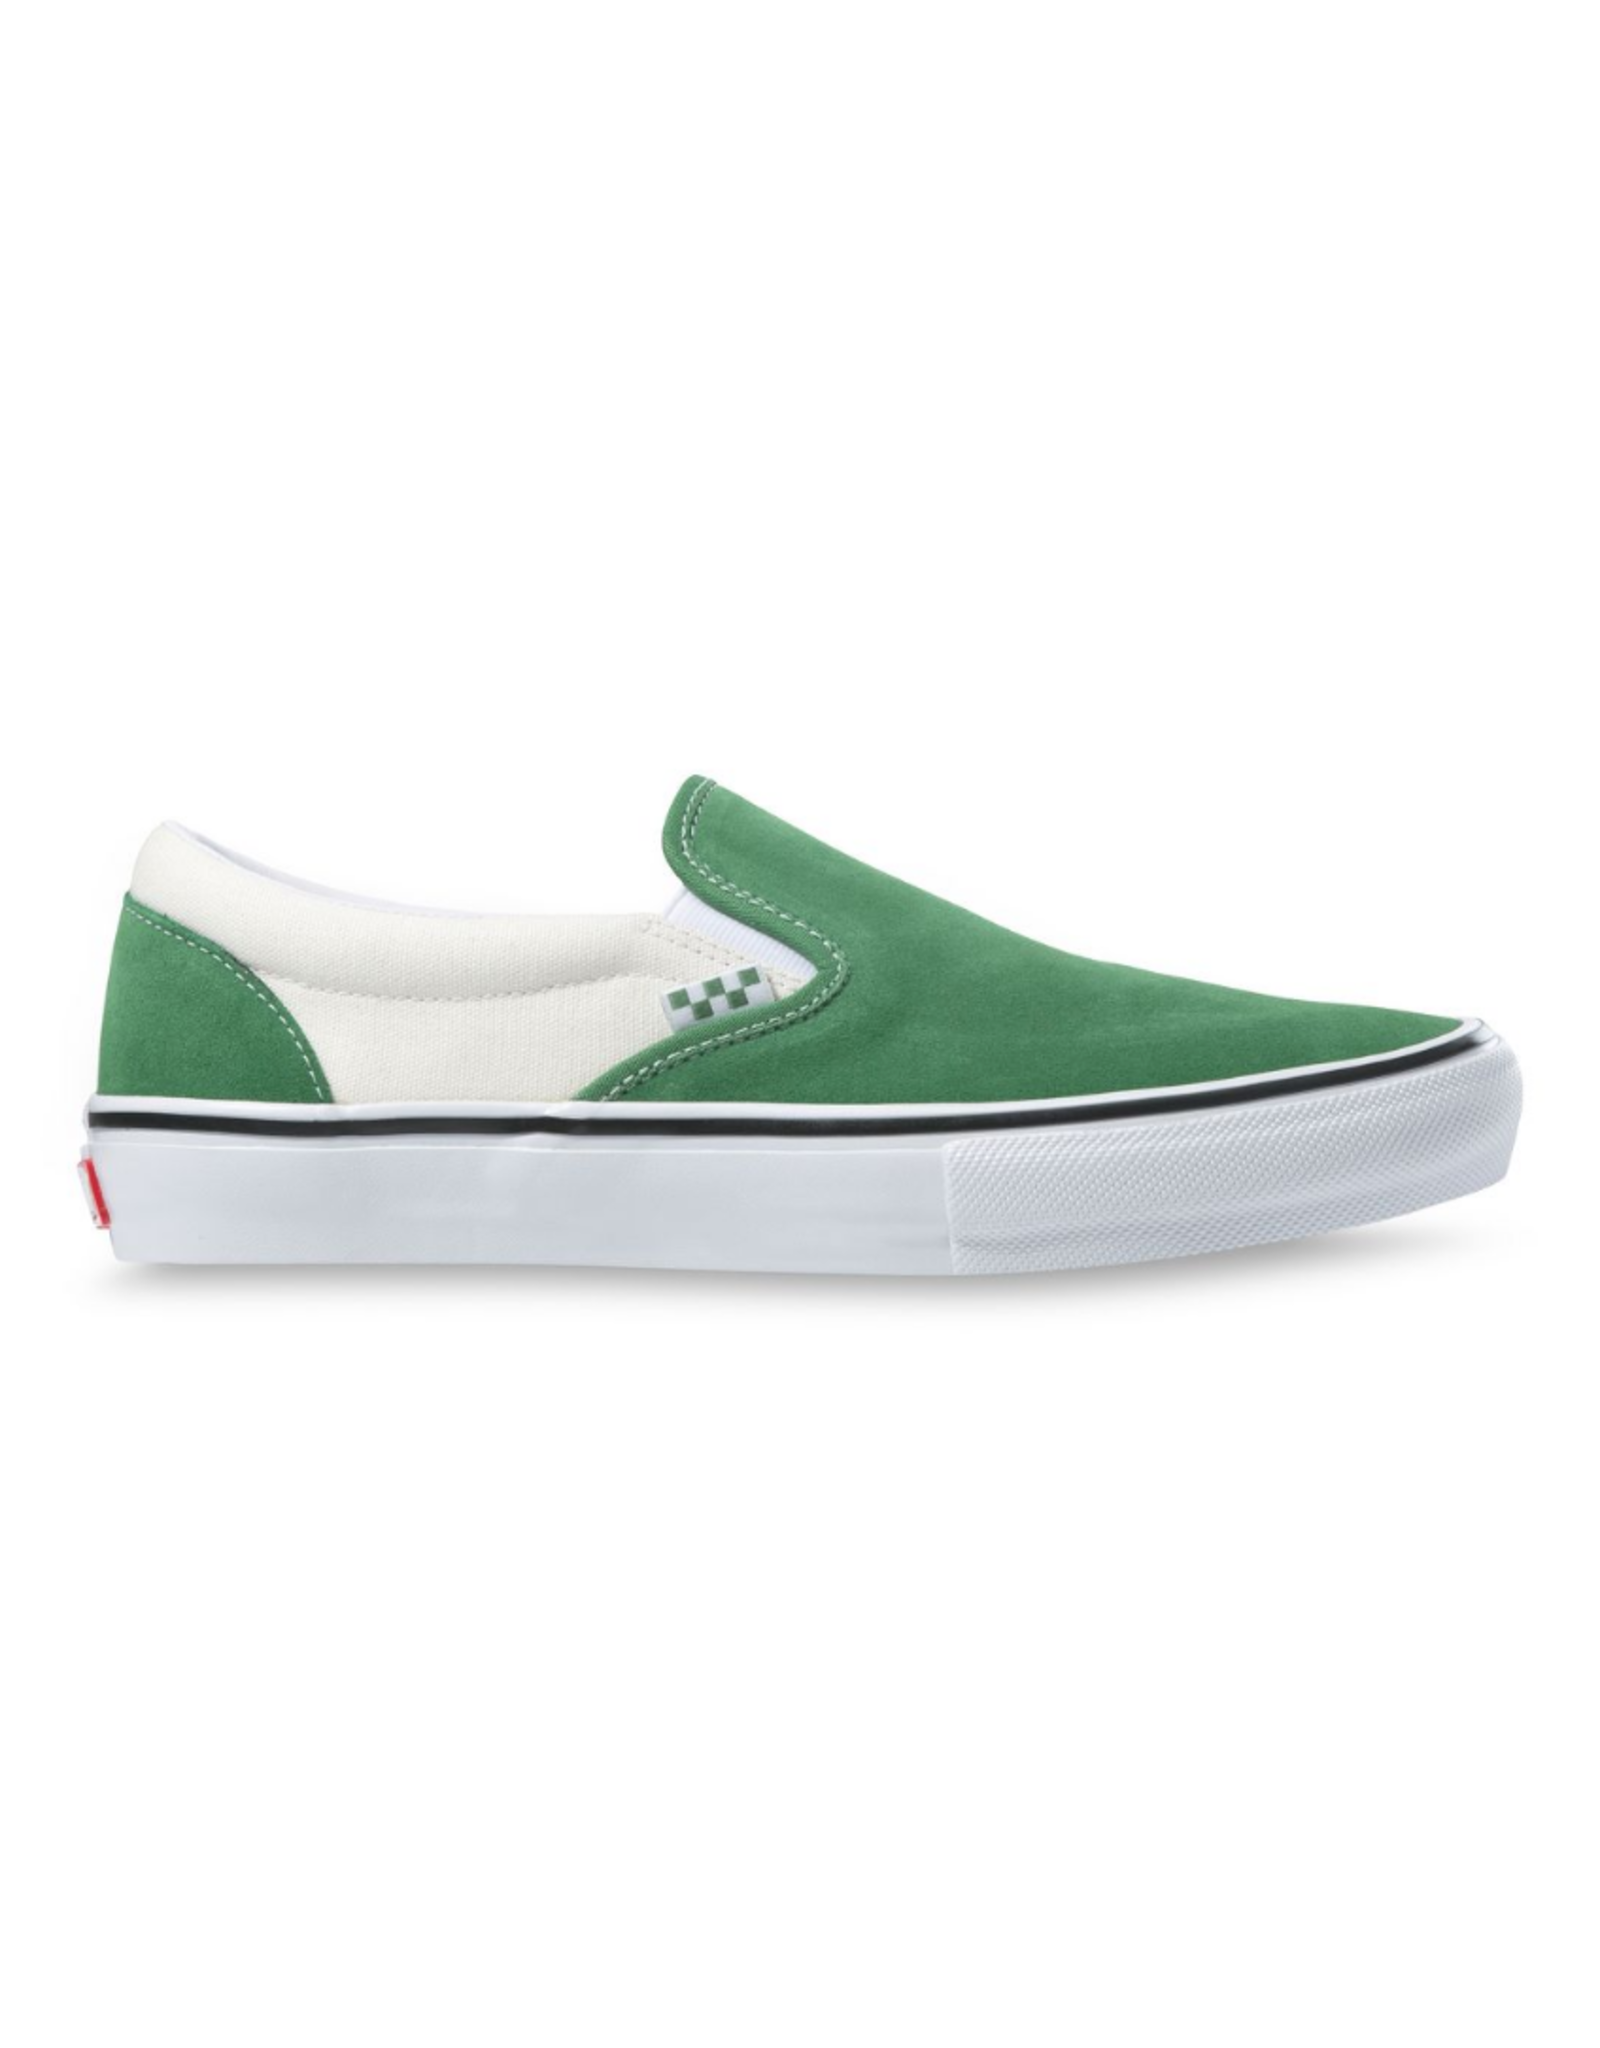 Vans Skate Slip-On - Juniper/White